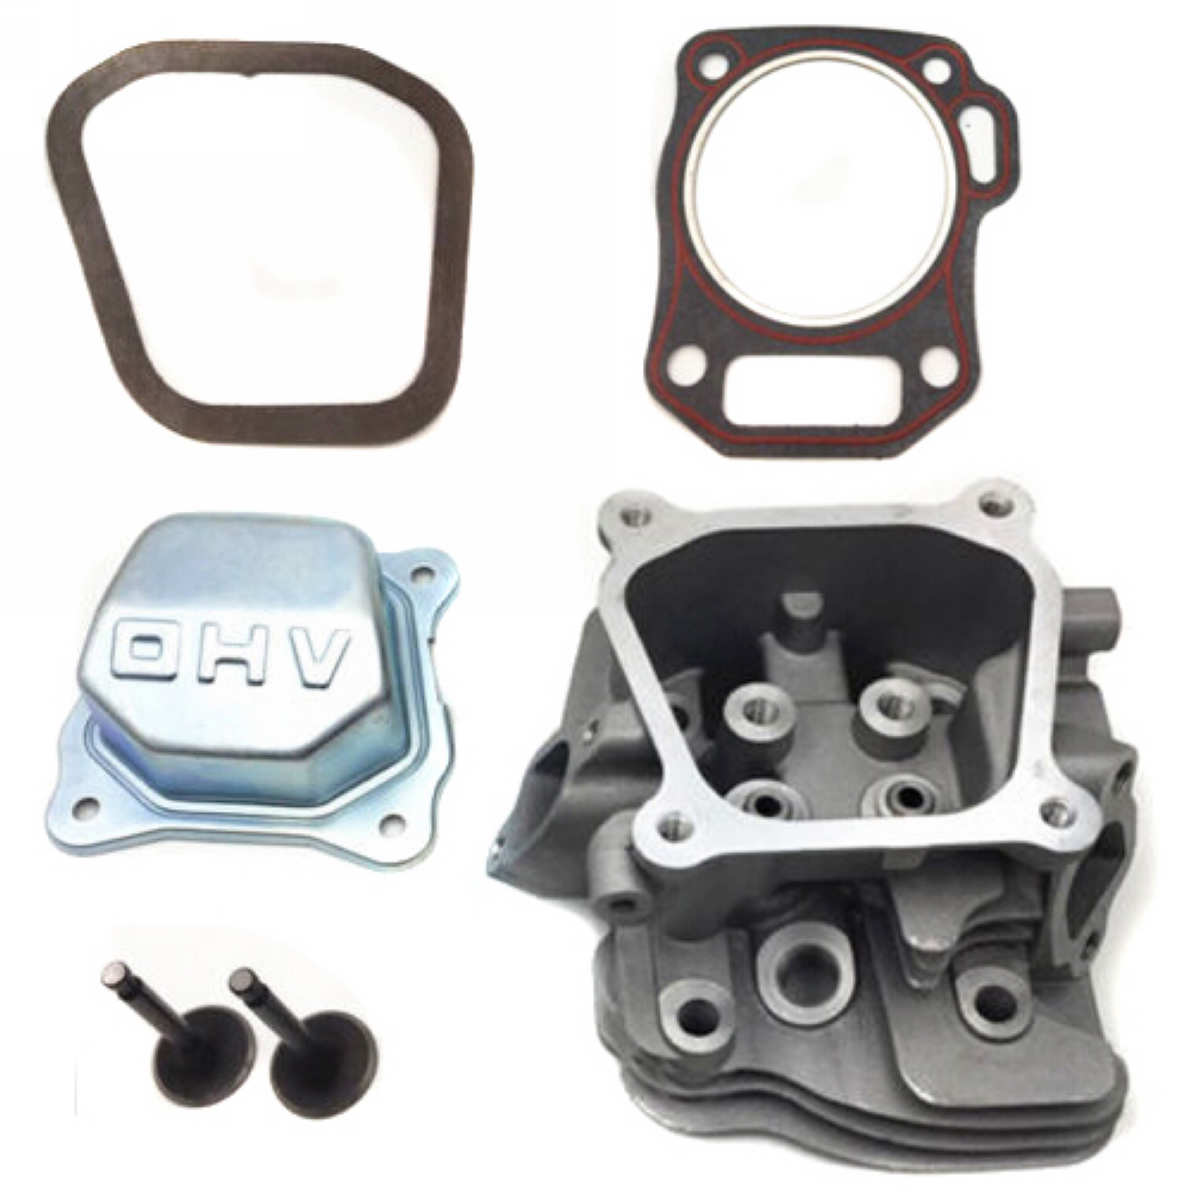 Mayitr Cylinder Head Kit For GX200 6.5HP Inlet & Exhaust Valve +  Gasket And Cover Gasket Engine Replacement Parts gy6 125cc 52 4mm scooter engine rebuild kit cylinder kit cylinder head assy for 4 stroke 152qmi moped scooter go kart atv